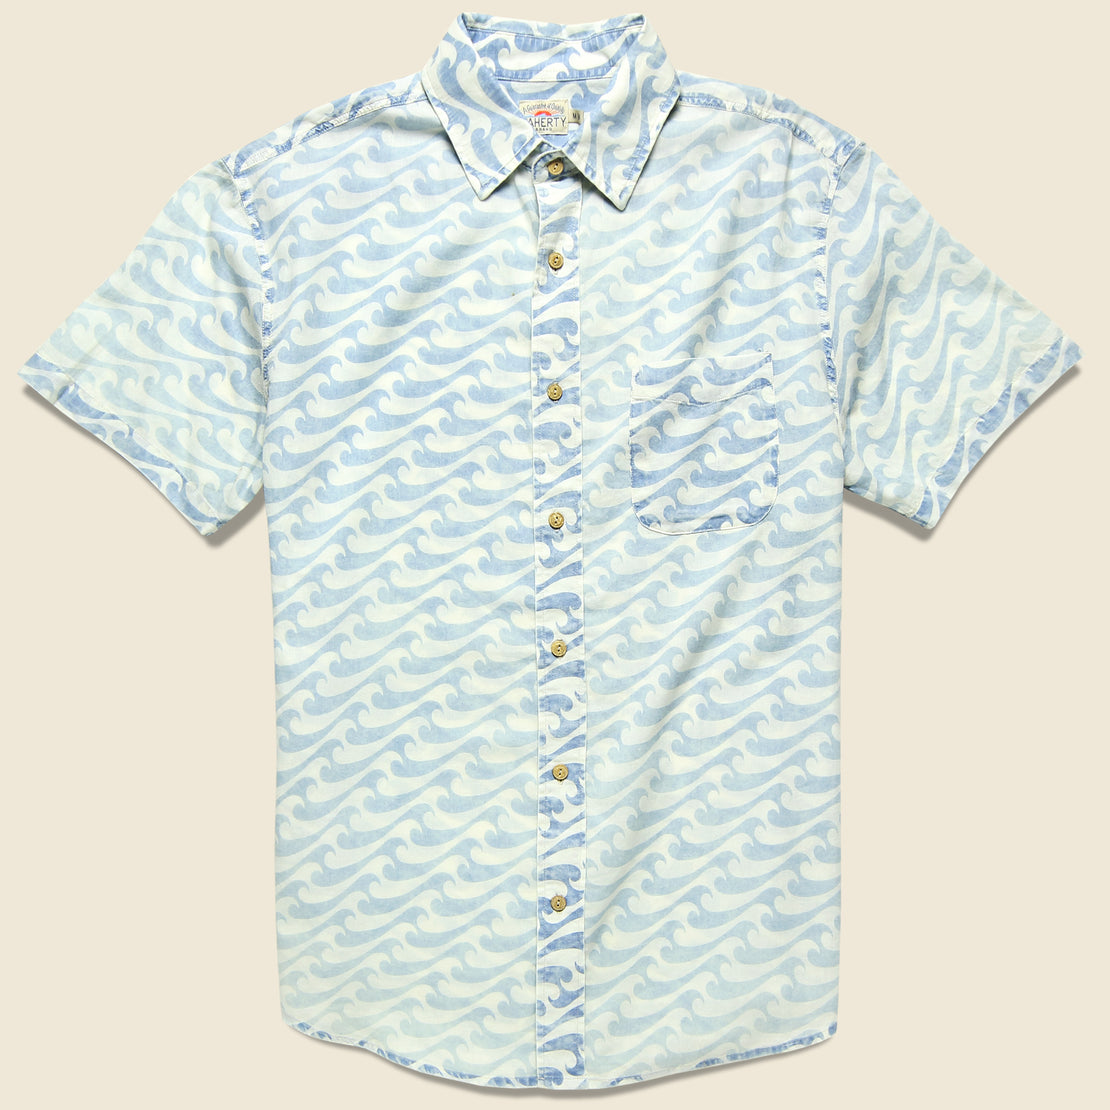 Faherty Coast Shirt - Epic Peaks